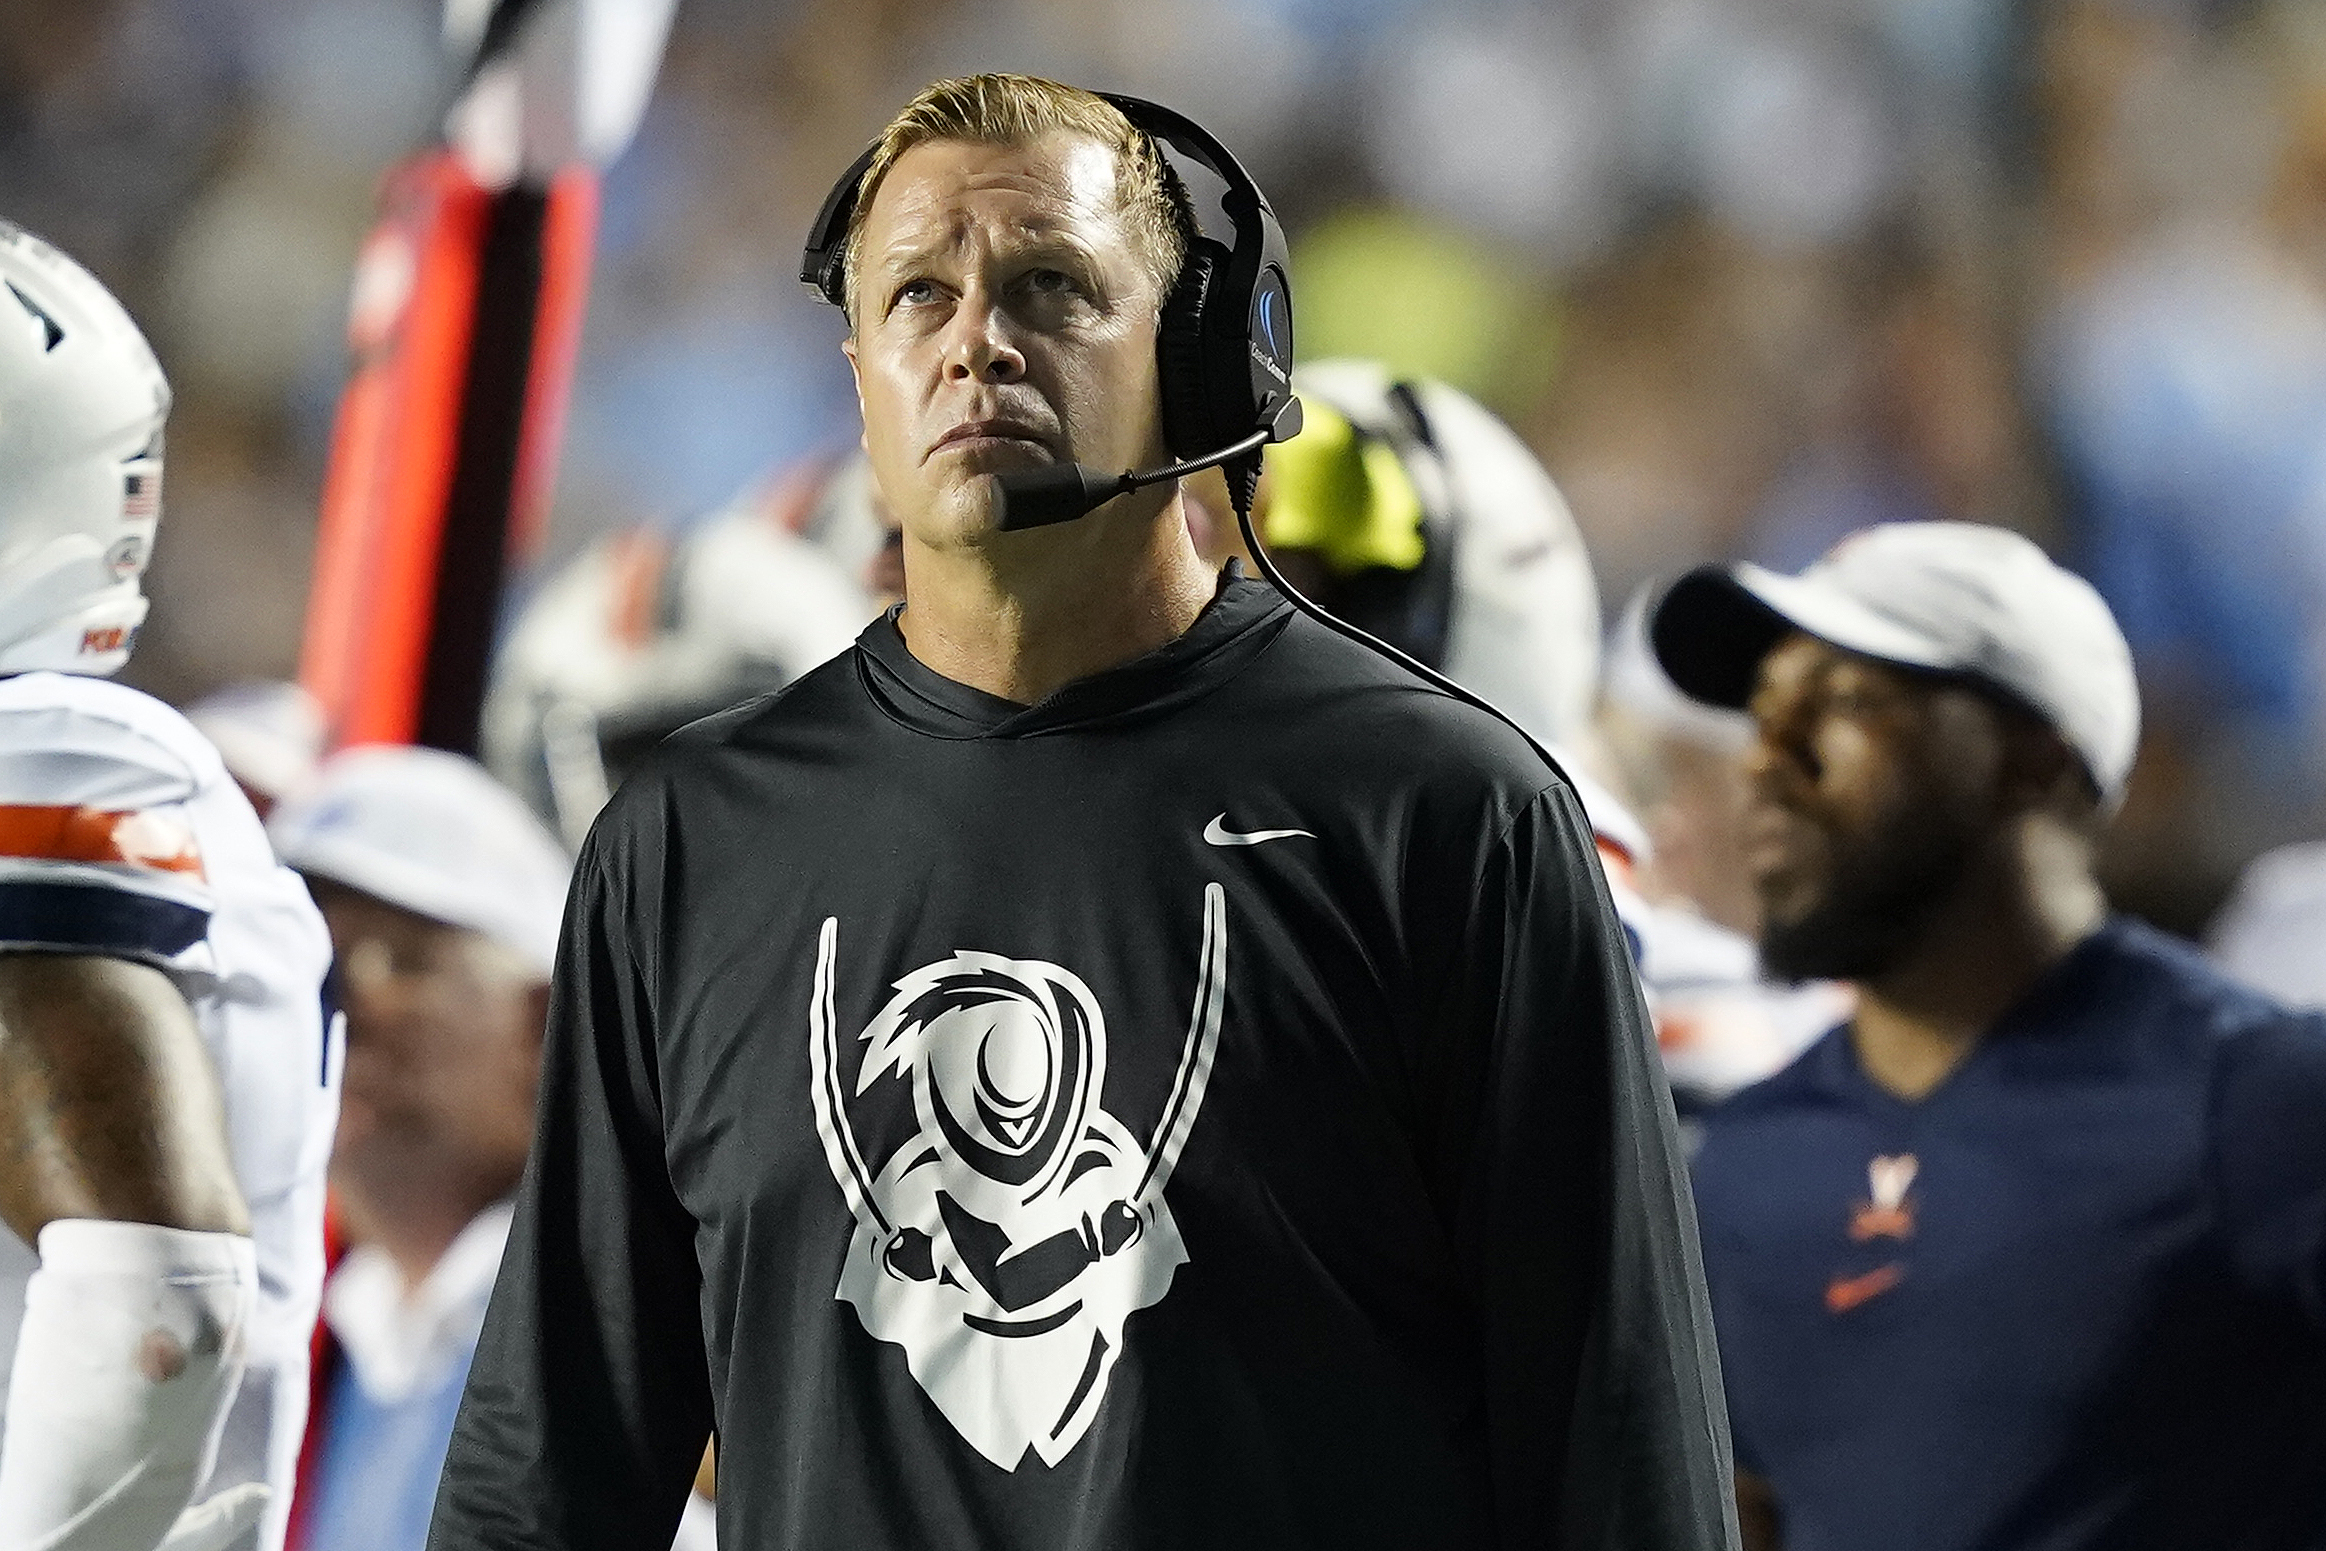 Virginia head coach Bronco Mendenhall looks on during game against North Carolina in Chapel Hill, N.C., Sept. 18, 2021.